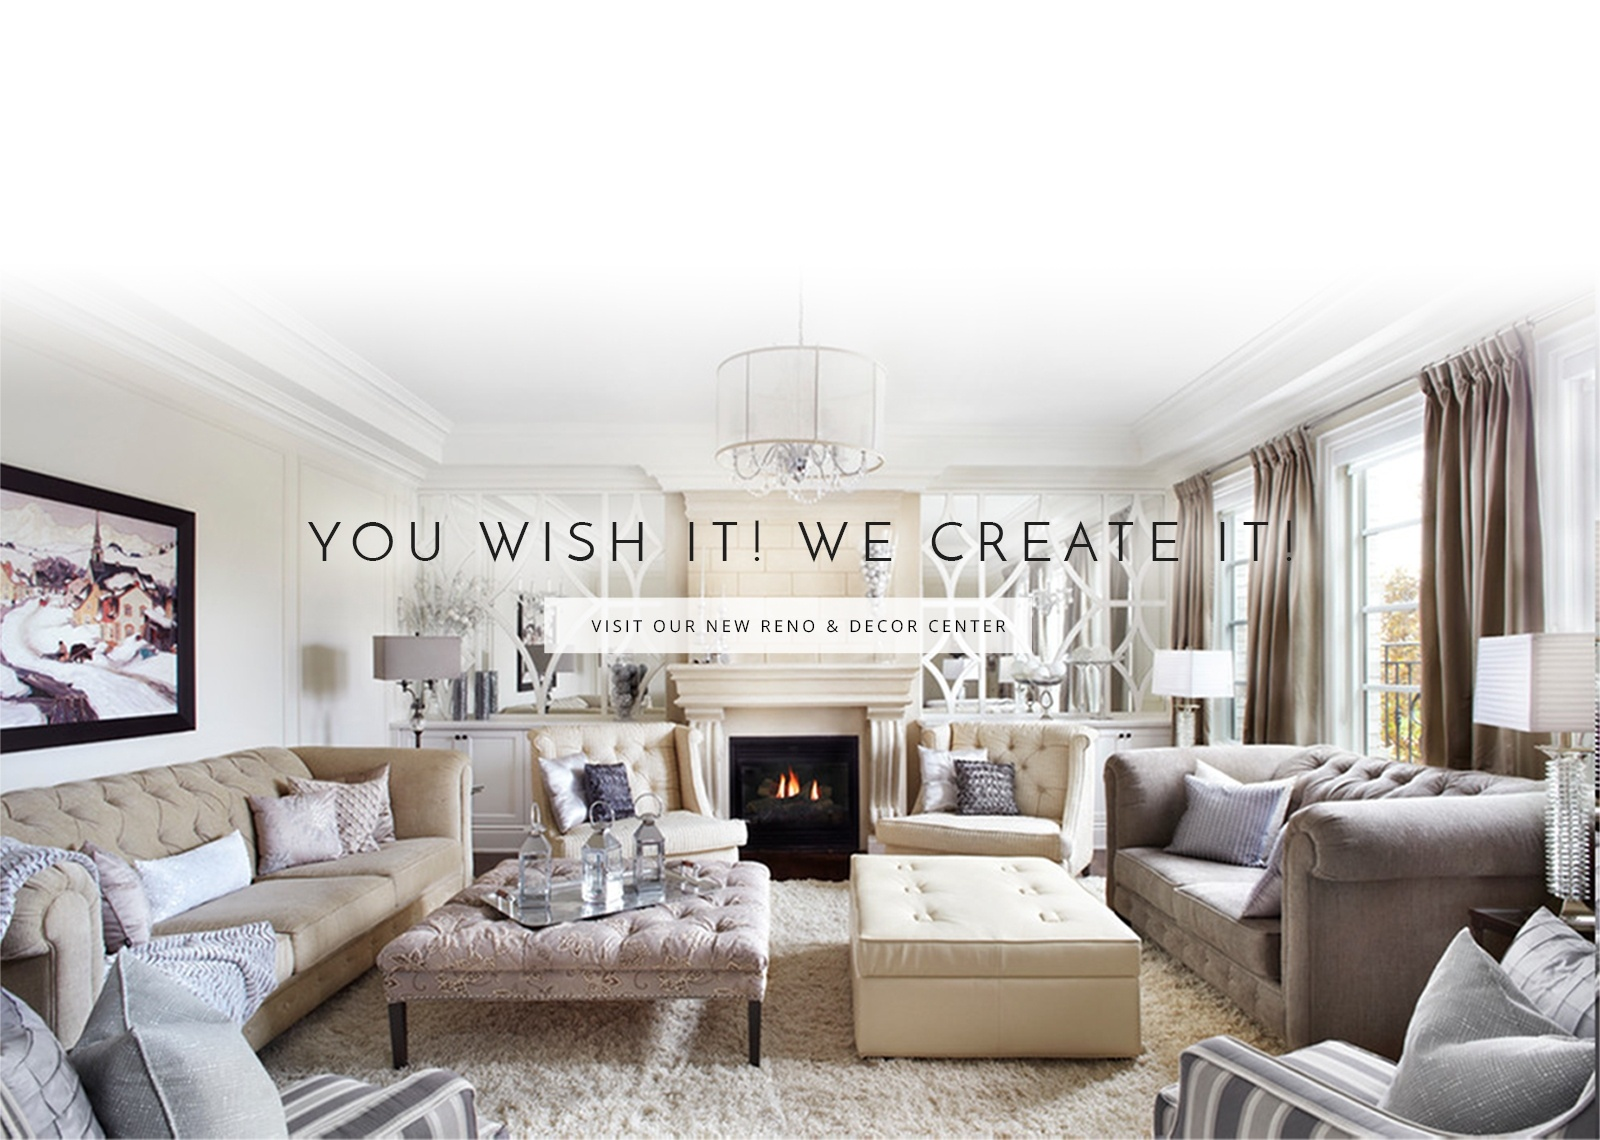 Royal Interior Design Ltd. | Interior Design Firm in Stouffville